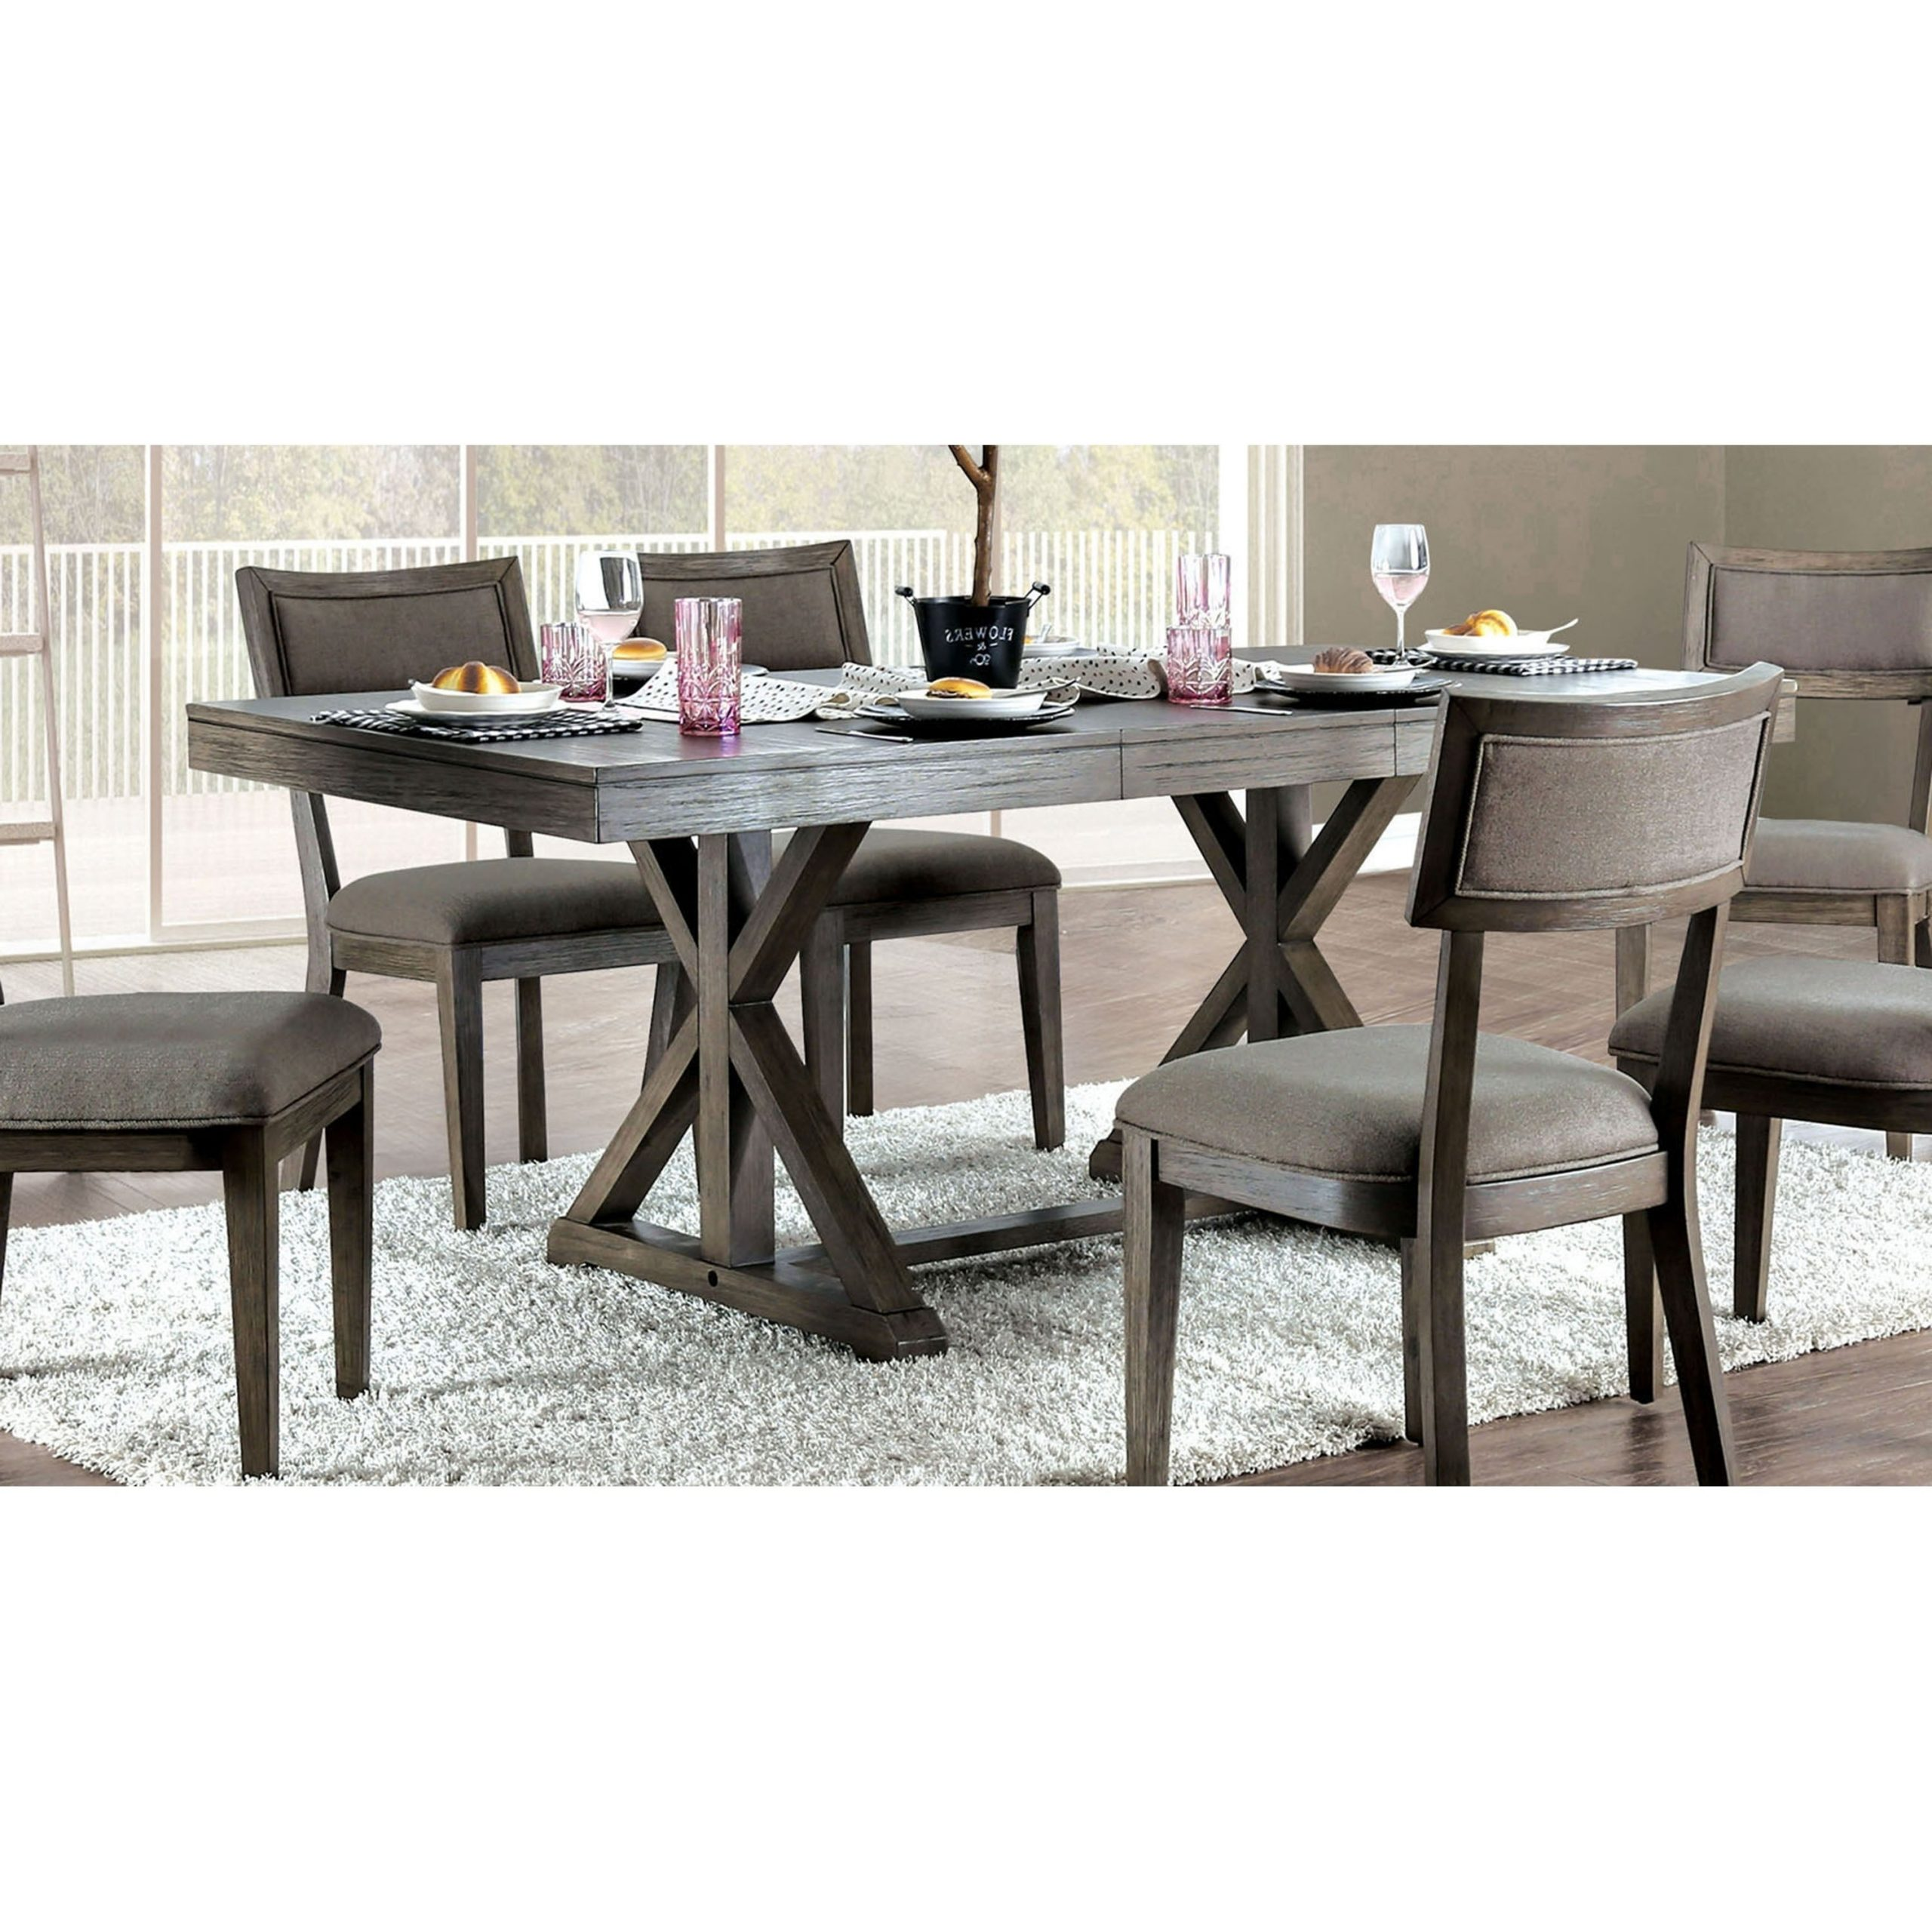 Well Liked Carbon Loft Valjean Grey Wood Dining Table Pertaining To Charcoal Transitional 6 Seating Rectangular Dining Tables (View 28 of 30)